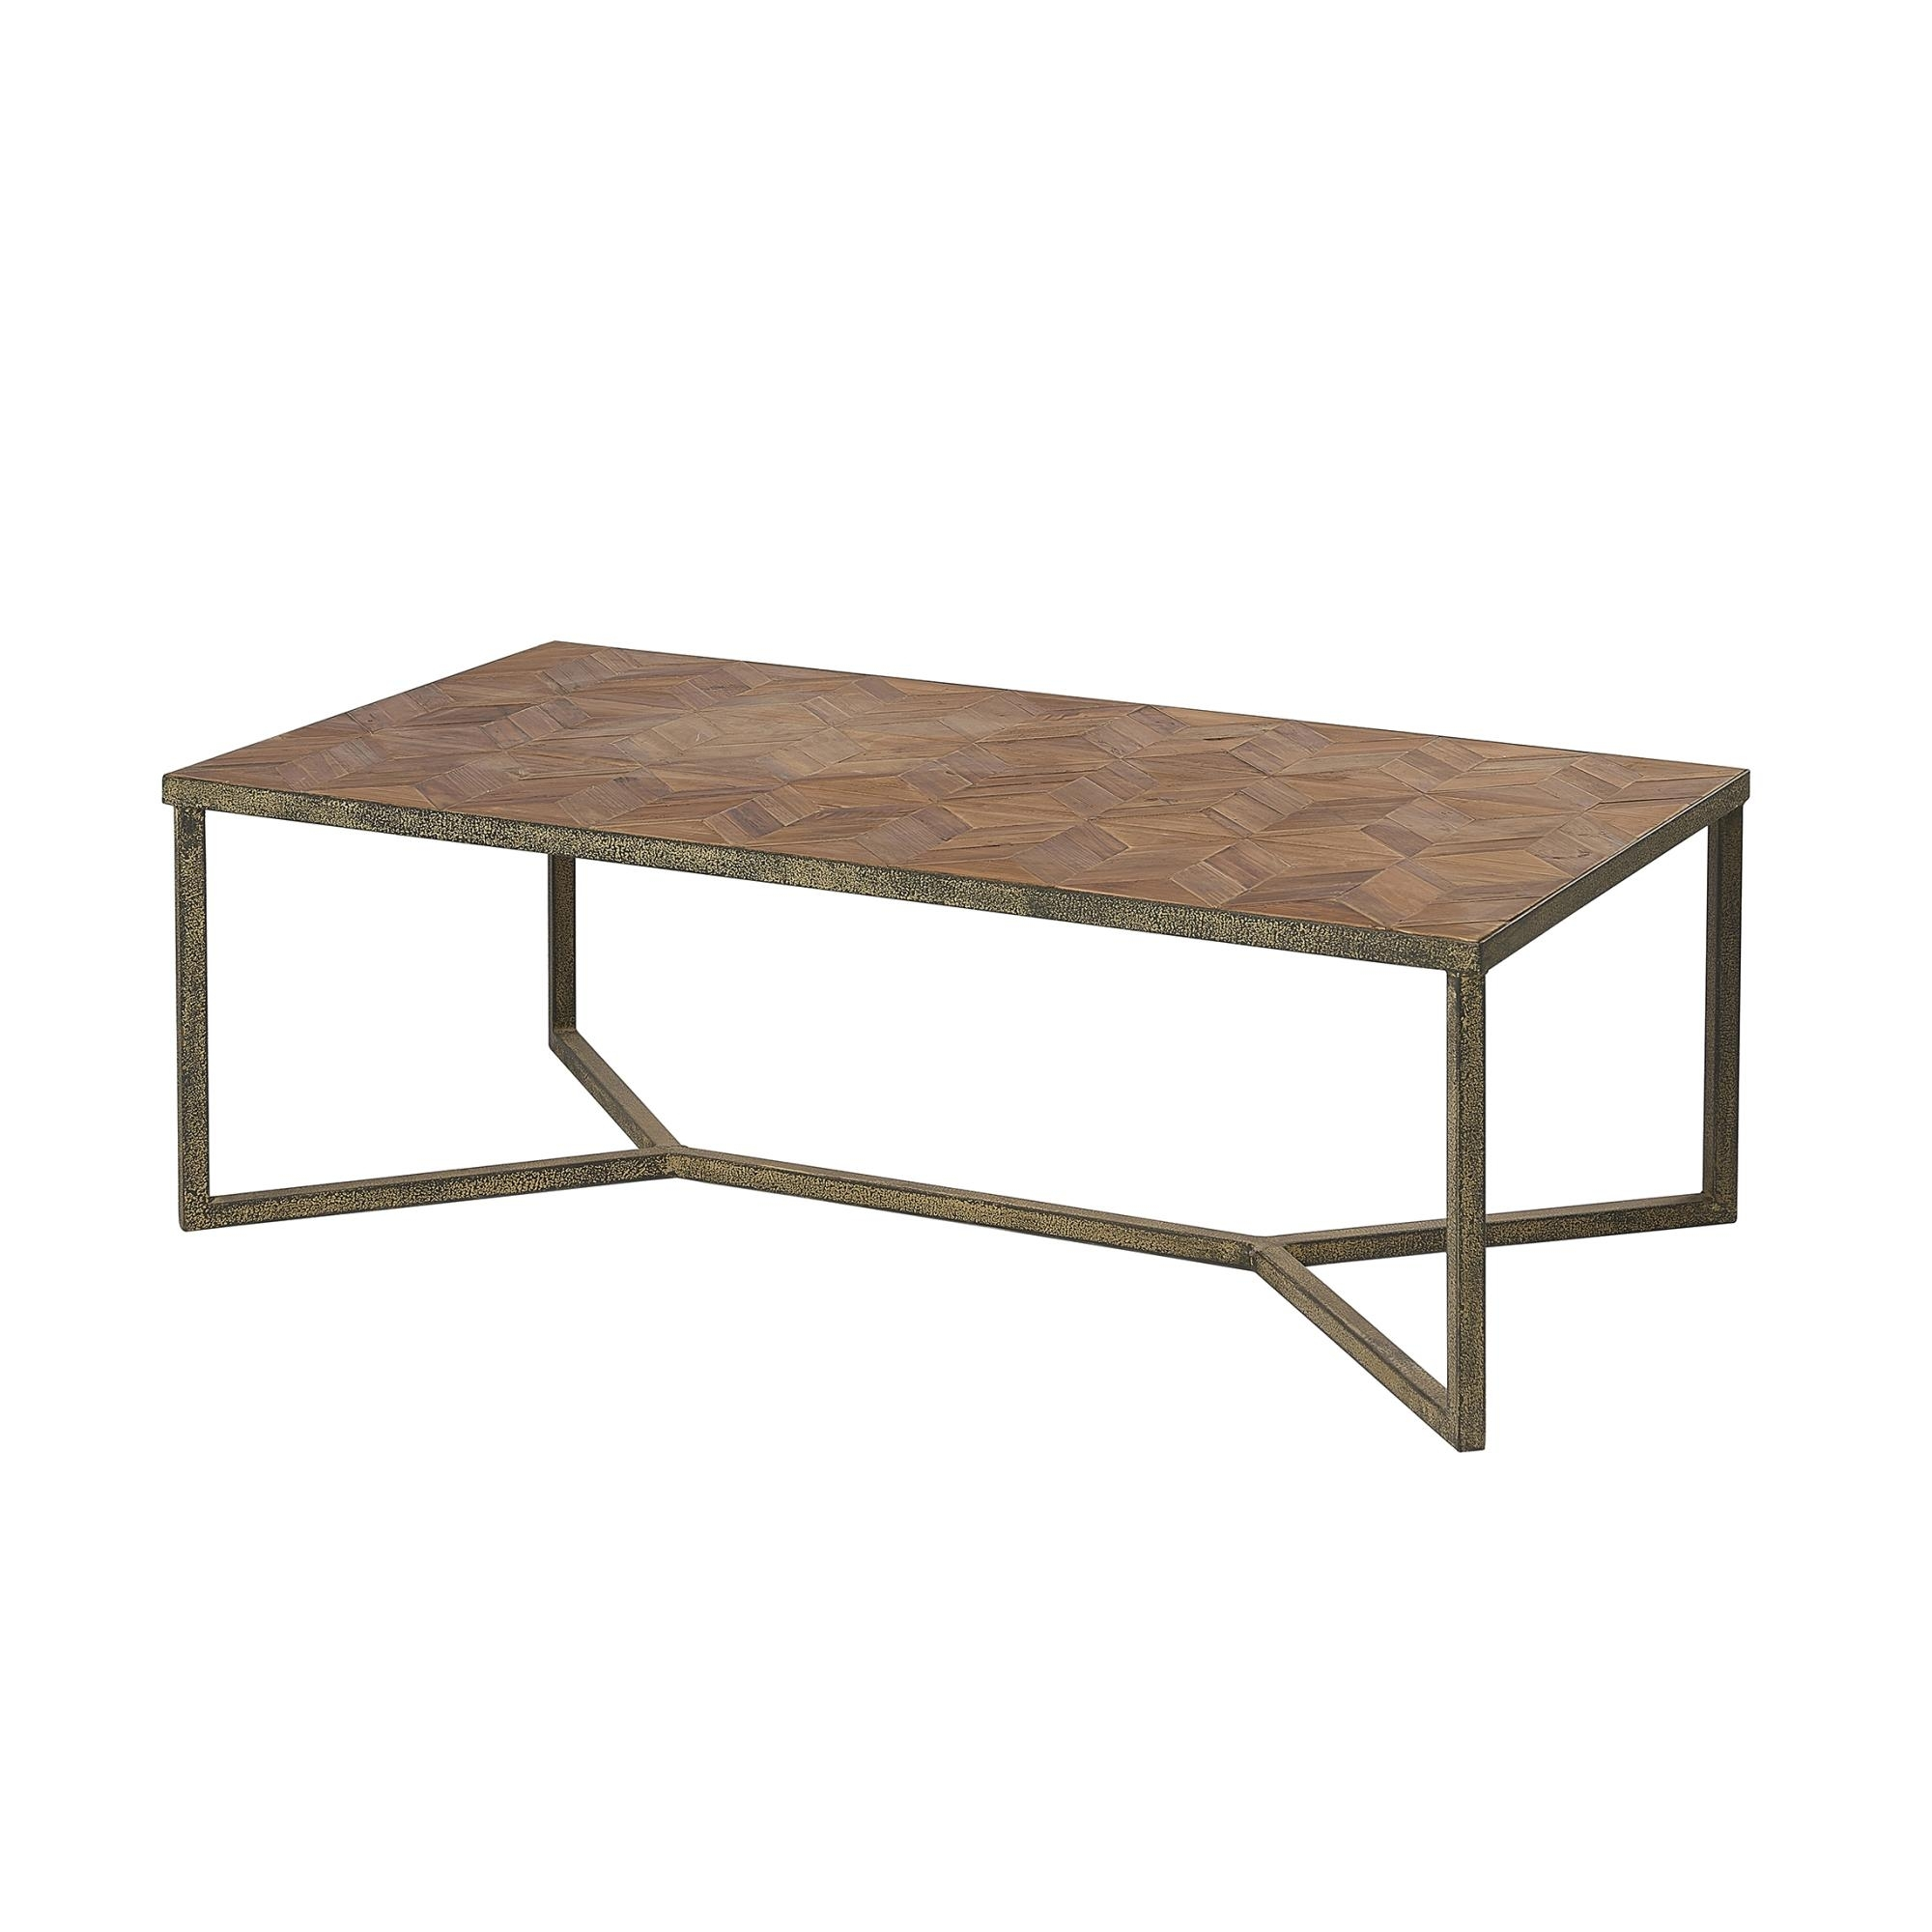 Havana Parquet Top Coffee Table - Time And Tide within Parquet Coffee Tables (Image 15 of 30)